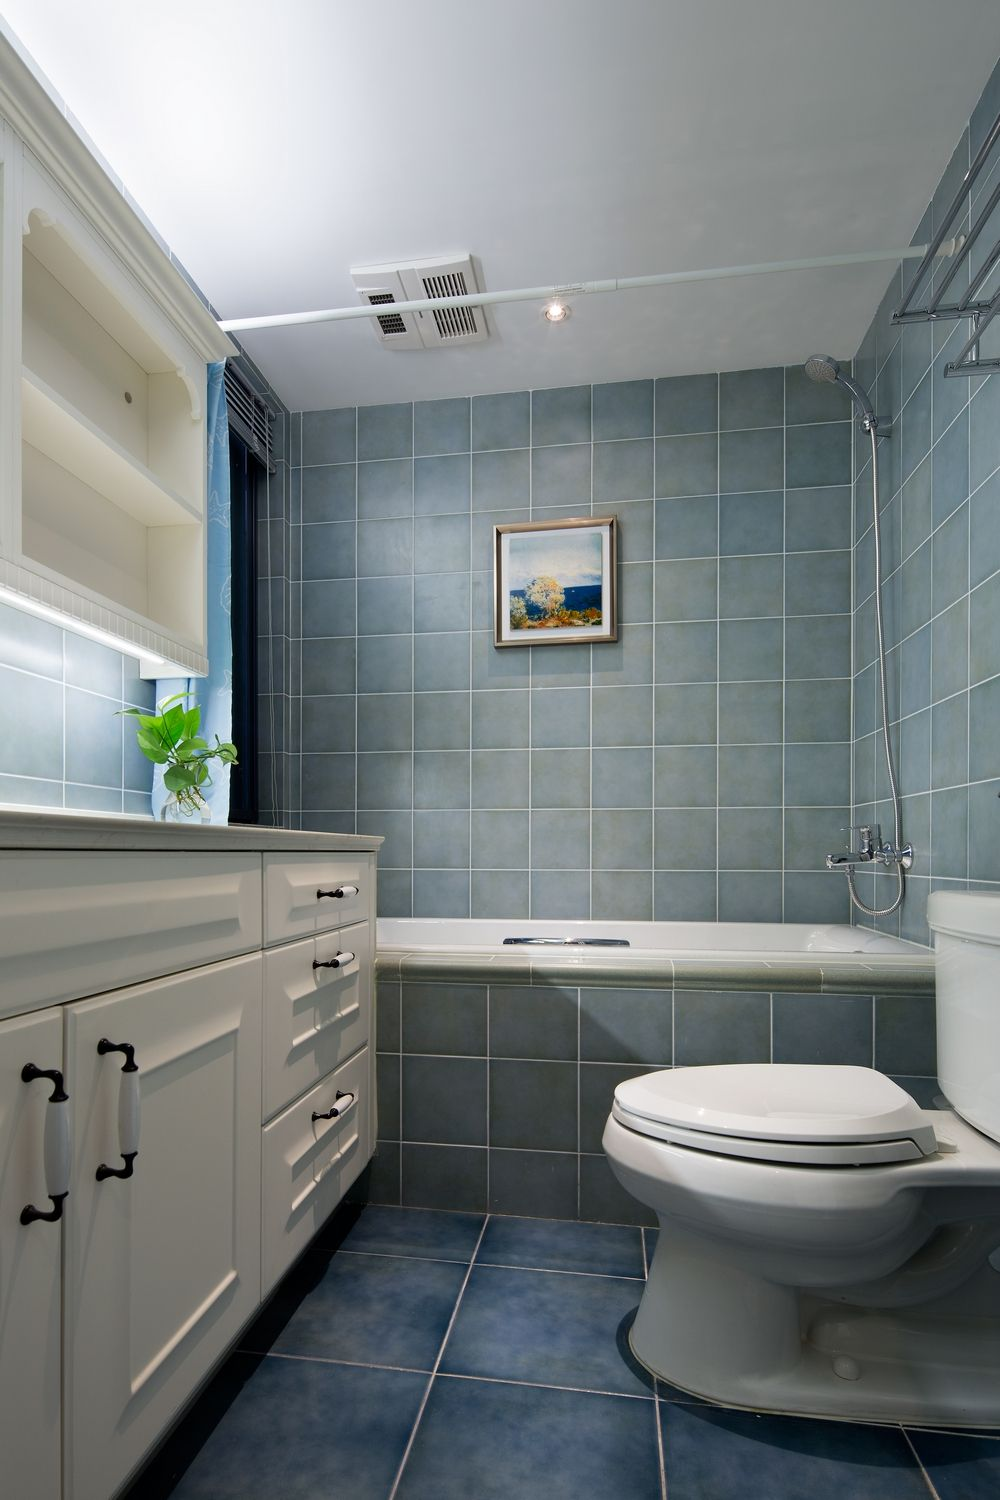 apartment interior design with modern american style interior decorating firms - Interior Decorating Firms